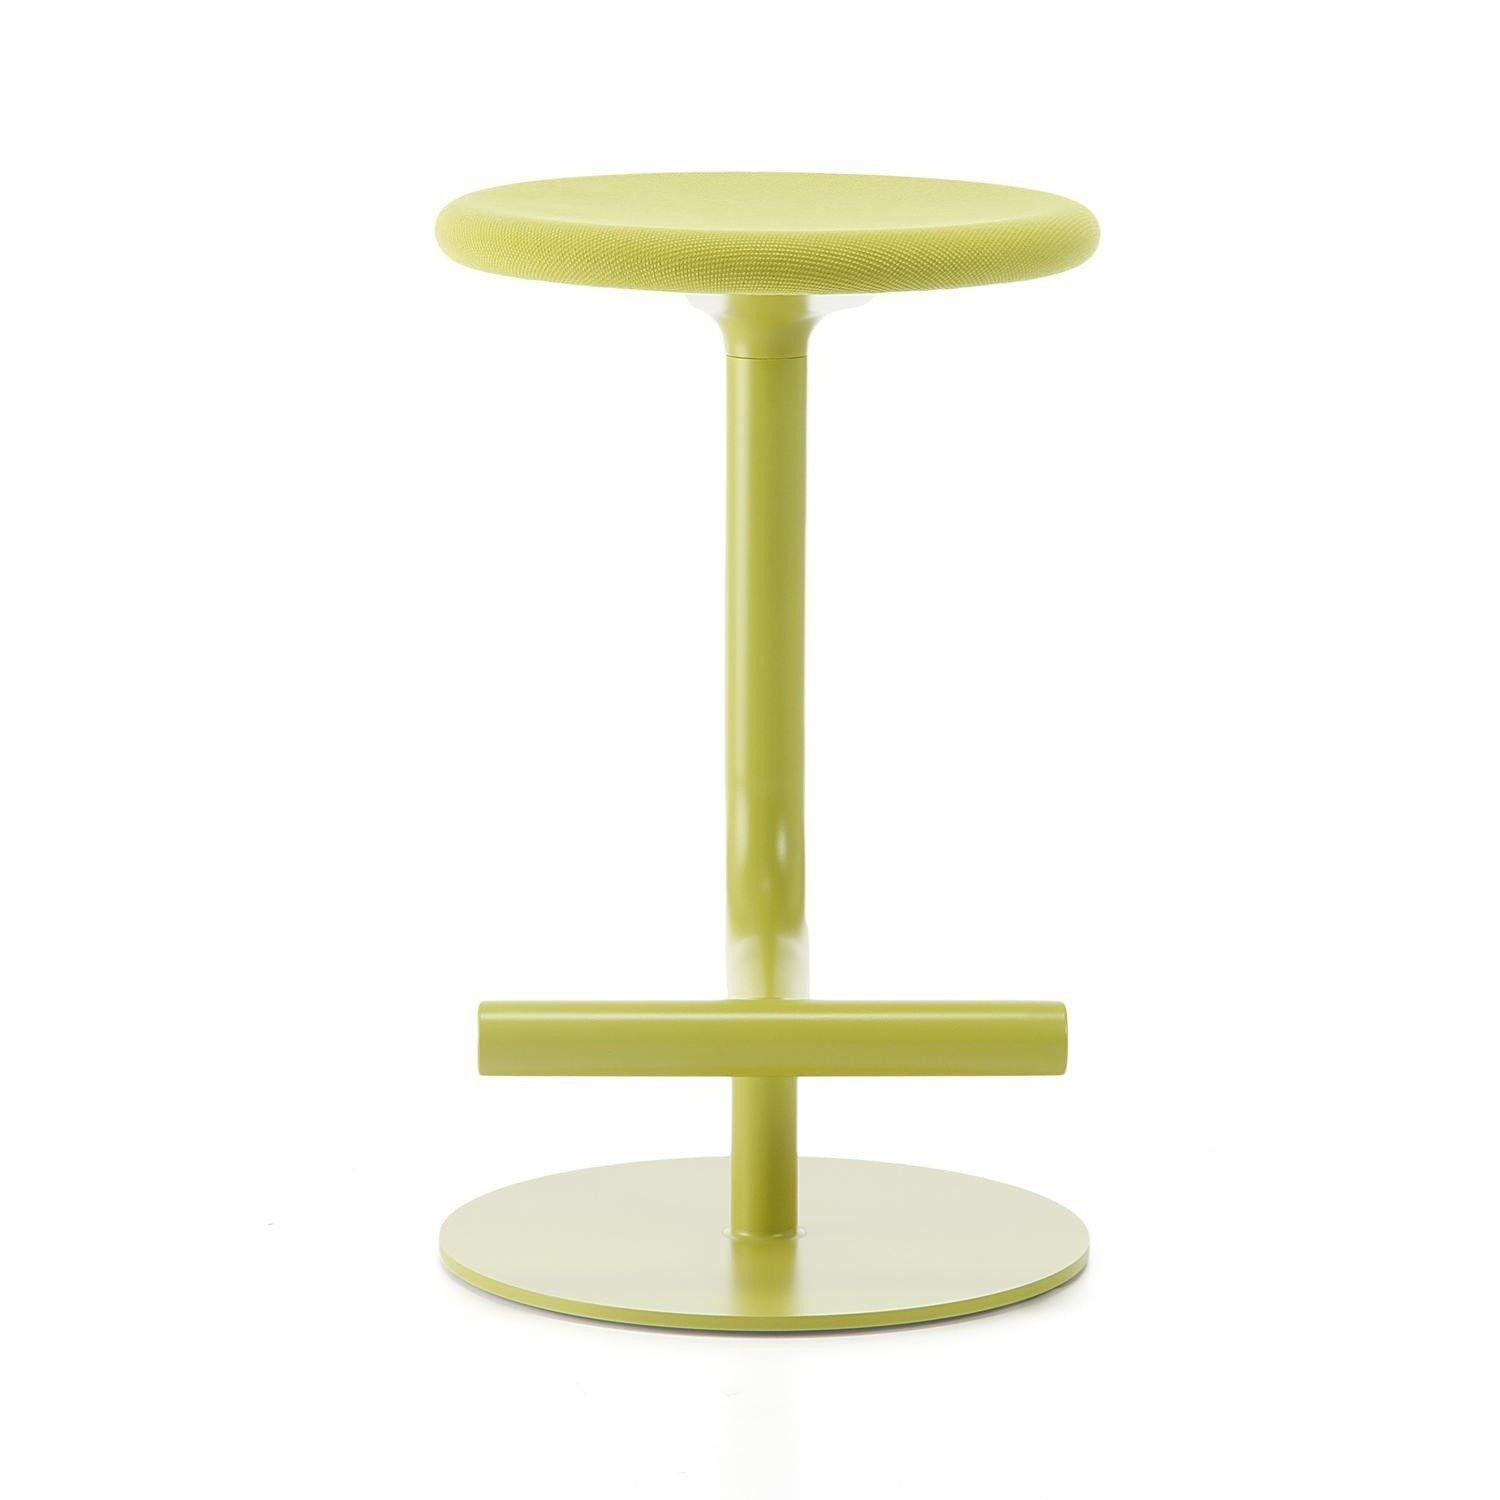 Magis Tibu Bar Stool Upholstered 60 70cm Ambientedirect